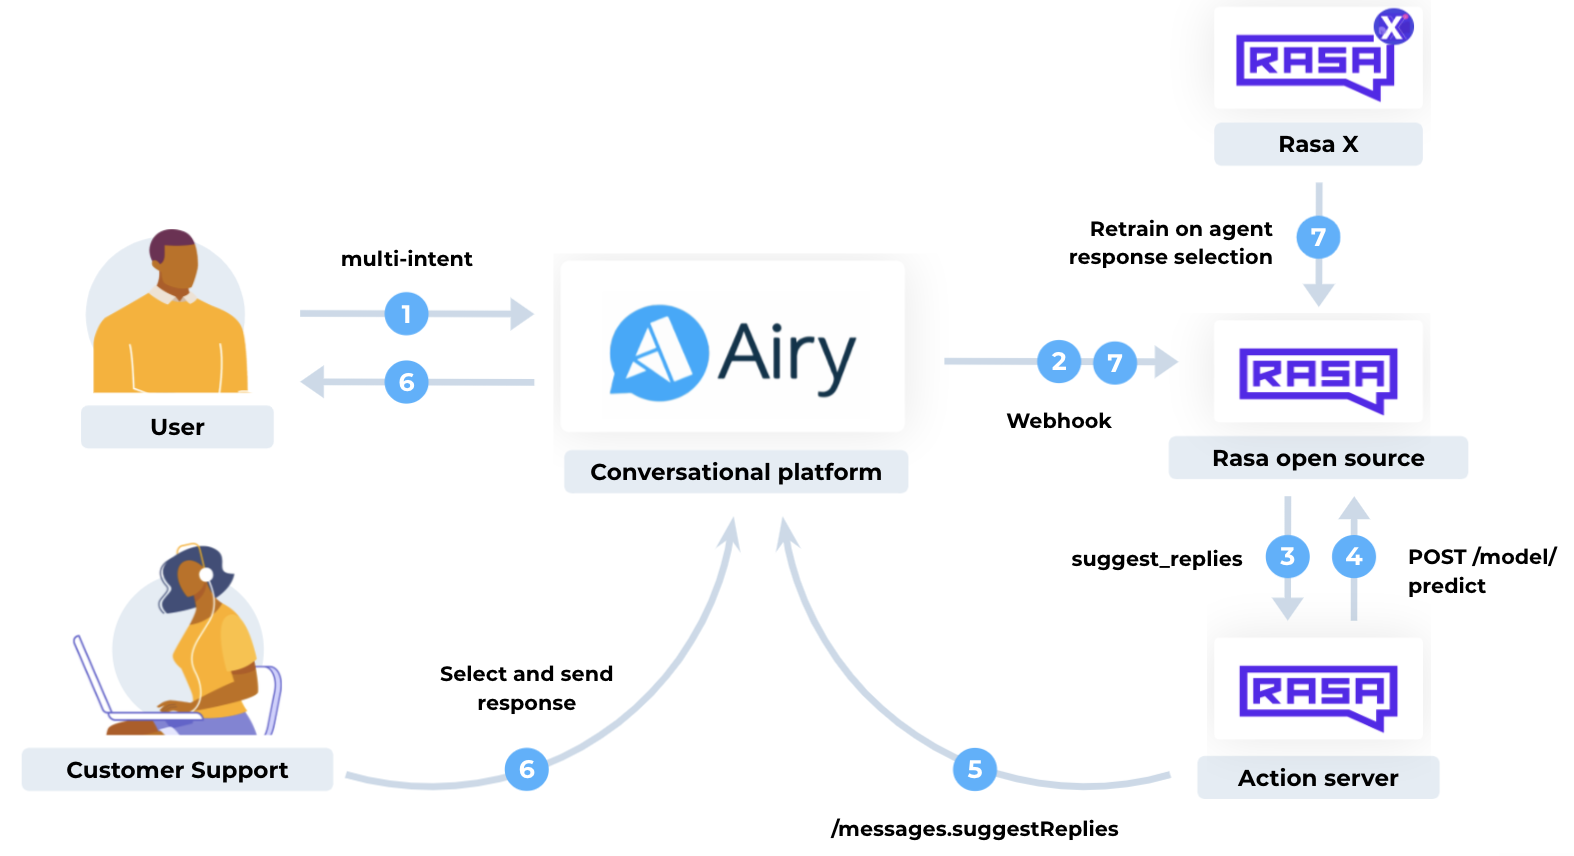 Activity diagram that shows 1 a user sending a multi intent message to Airy. 2 The message gets forwarded to Rasa via webhook. 3 Rasa calls the suggest reply action on the action server. 4 The action server uses the model predict endpoint to get the right actions given the next best intents. 5 The action server sends the suggested replies to the airy conversational platform. 6 Customer support selects the right response and it gets sent to the user. 7 Everything is streamed to Rasa X where you can retrain your model in real time